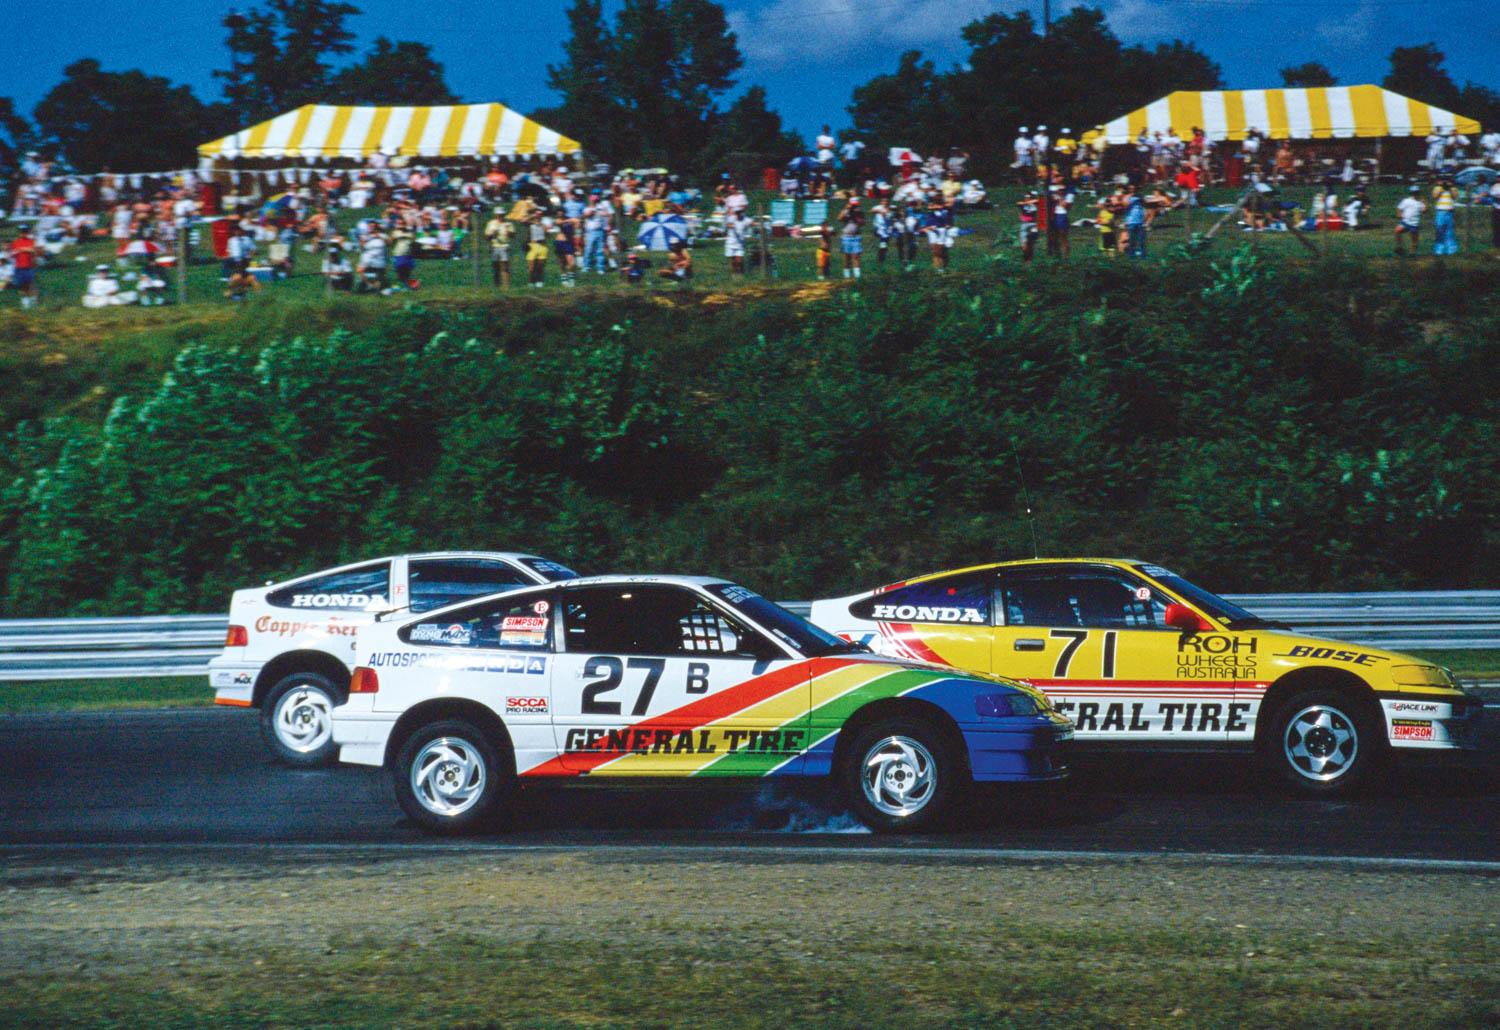 In the 1990s, lap times dropped even as budgets soared.